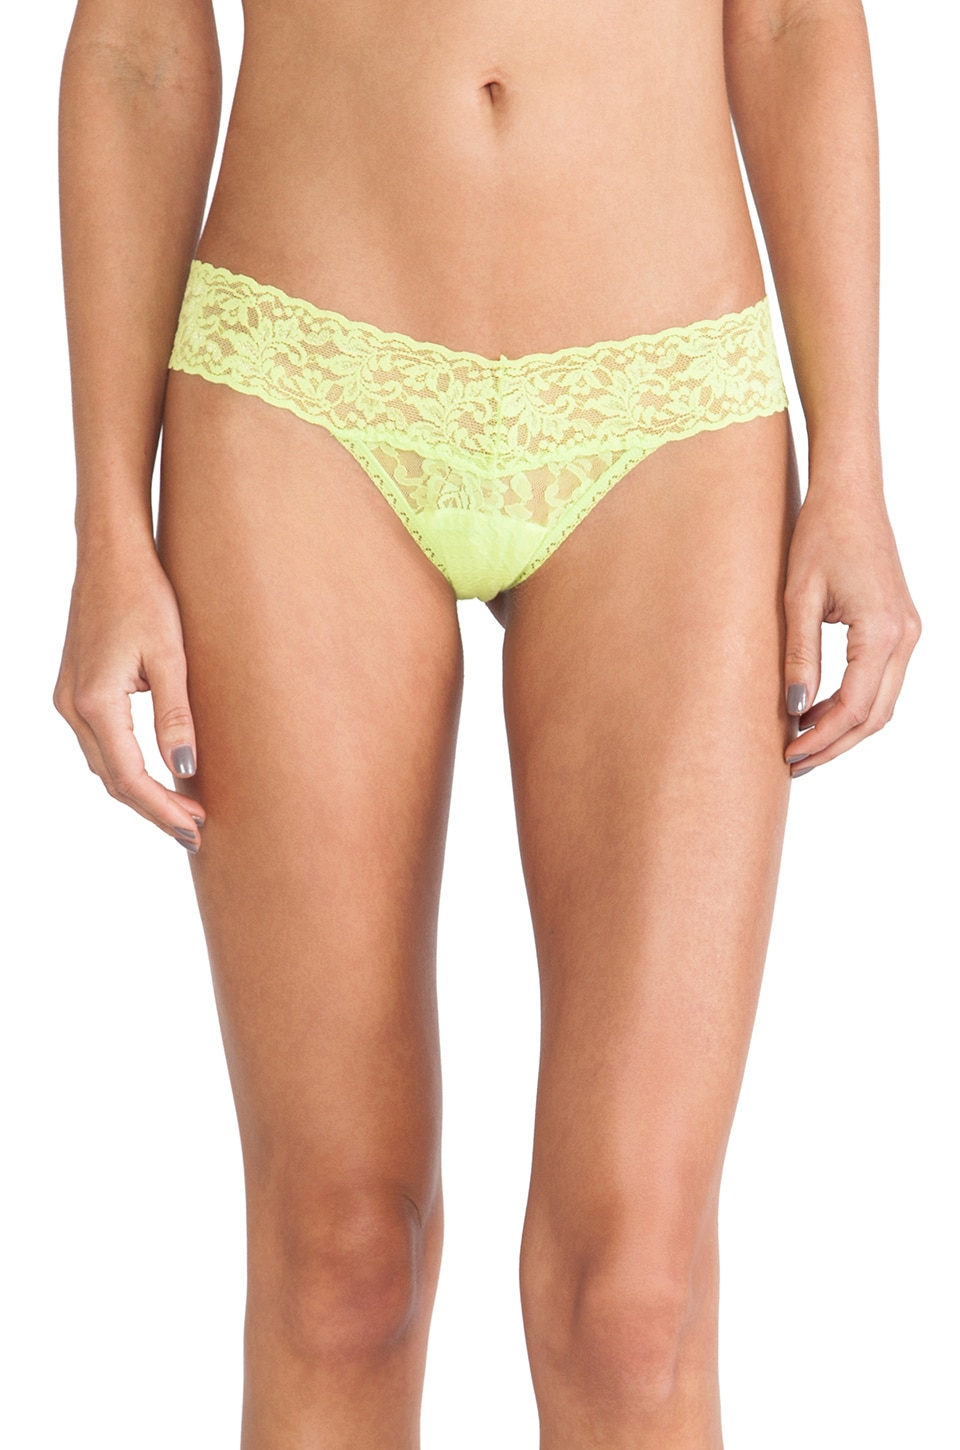 Hanky Panky Signature Lace Low Rise Thong in Key Lime Pie